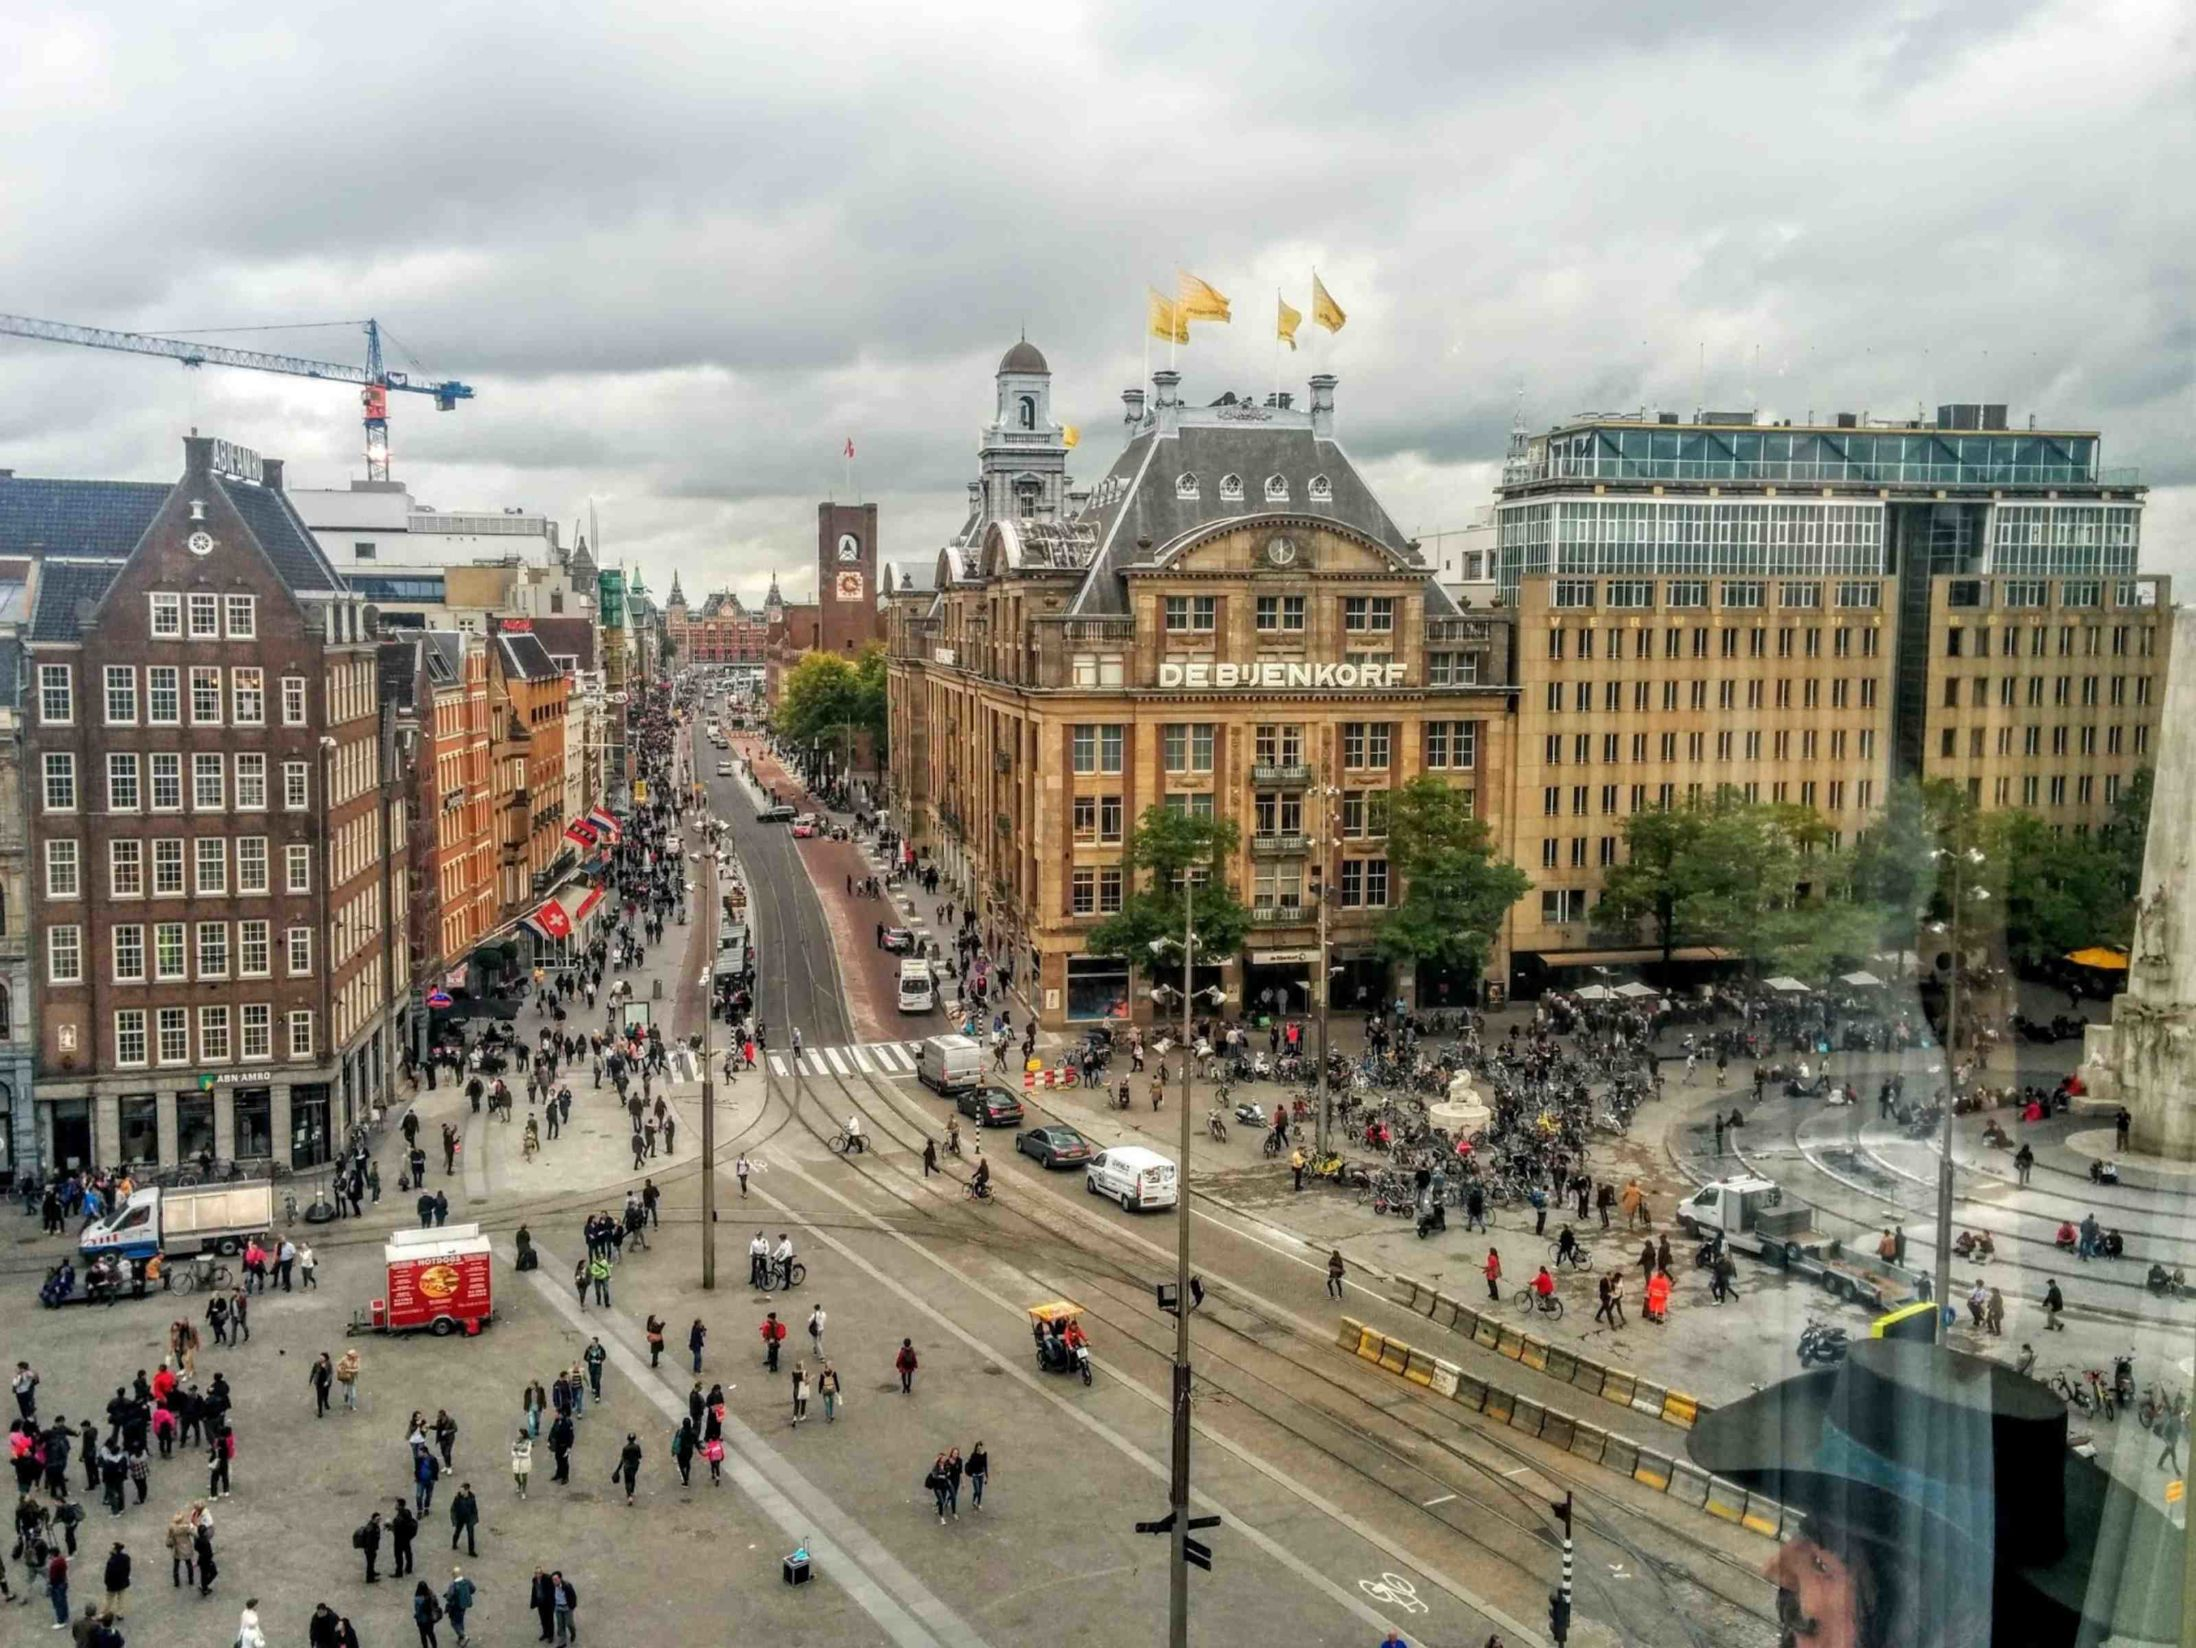 Top Attractions in Amsterdam - Dam Square